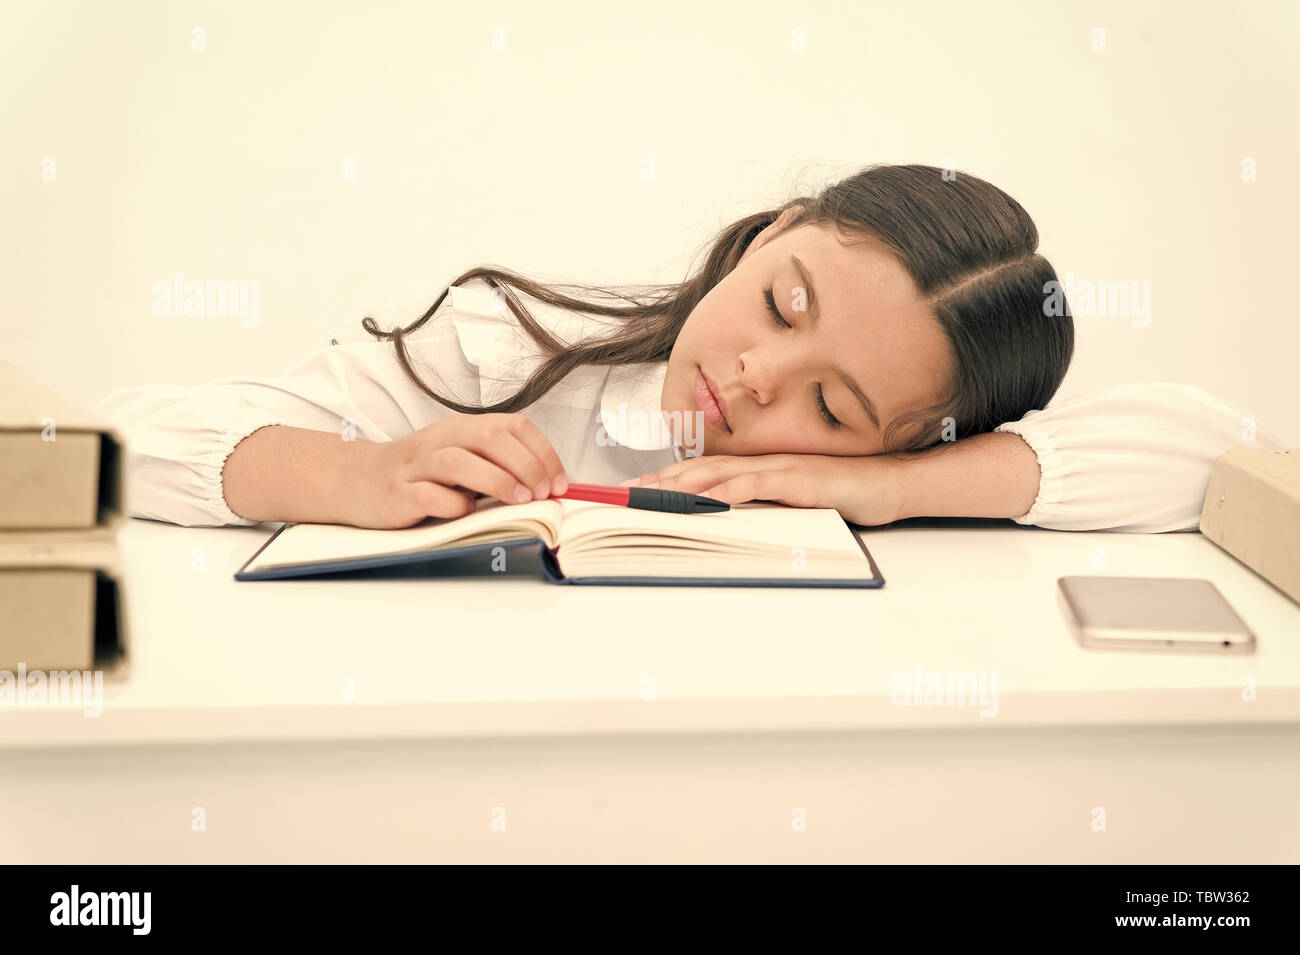 Nap concept. Tired schoolgirl have nap. Little girl taking nap at desk. It is a nap time. - Stock Image